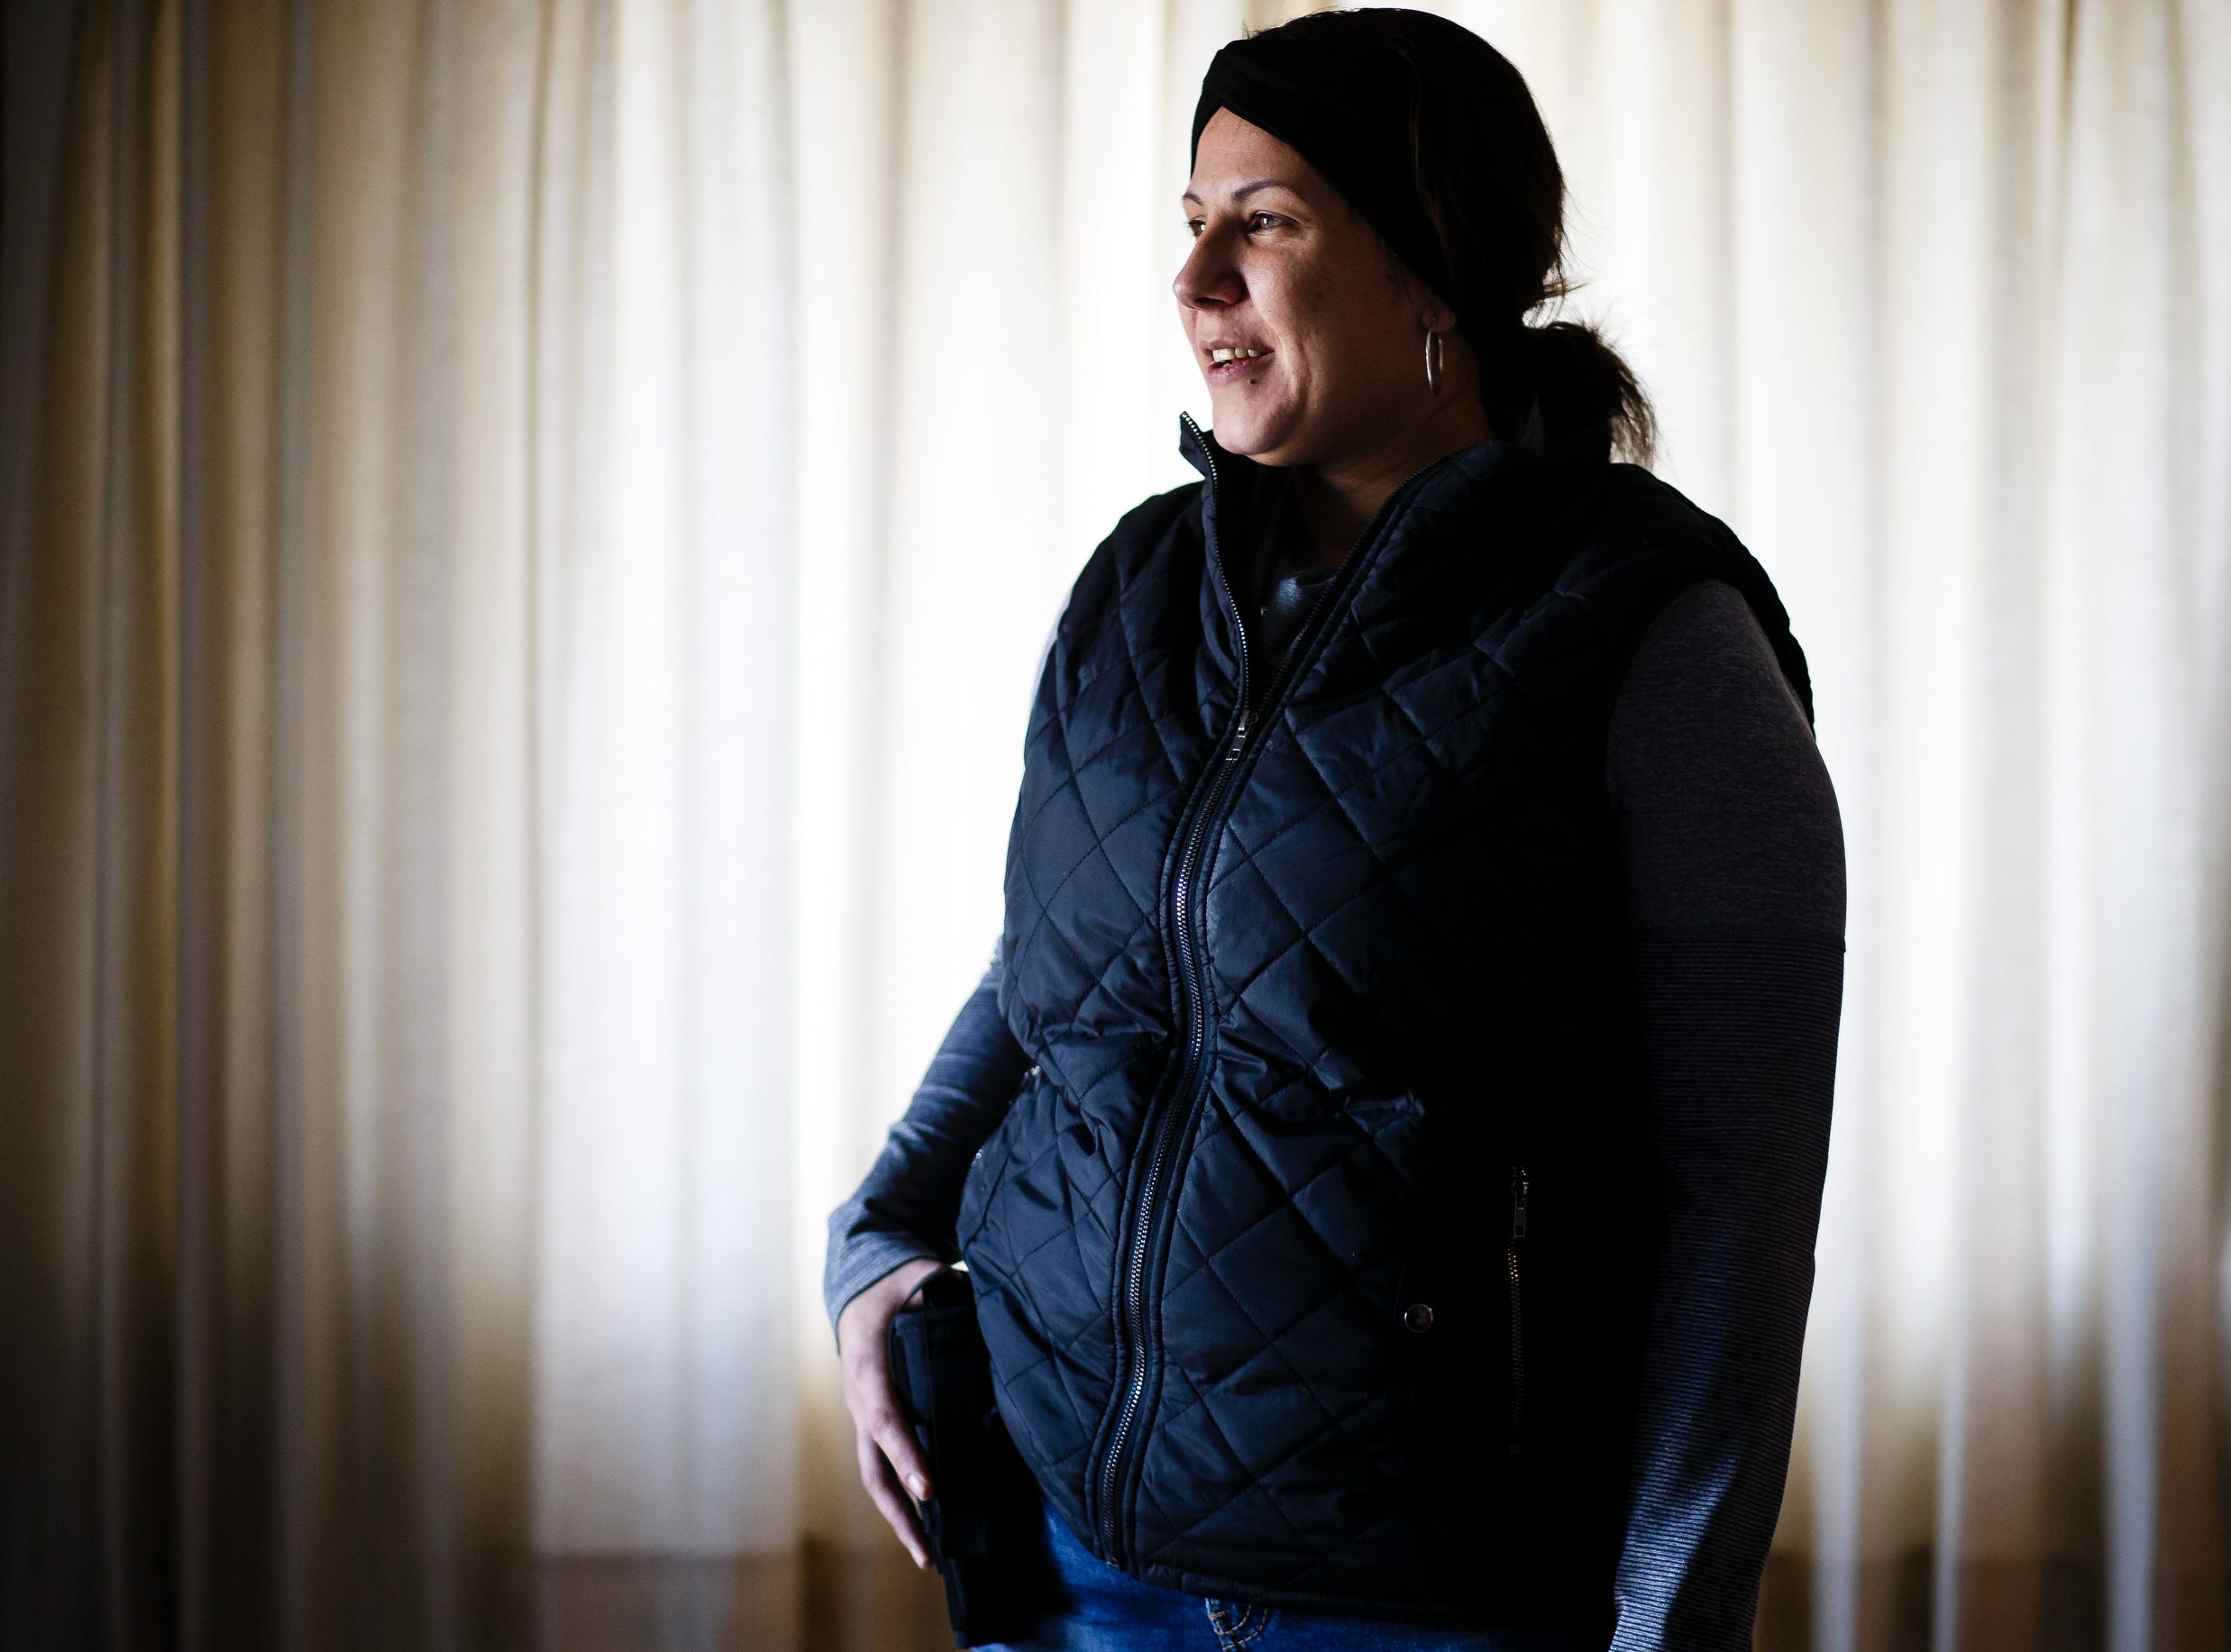 Jessica Bensley admits she has misdemeanors in her past but none that have risen to the level of a felony. Despite that, Bensley, along with others, were inaccurately added year to an Iowa felon list, resulting in the rejection of their votes. A licensed concealed-carry gun owner, Bensley poses with her sidearm at her home on Wednesday, Dec. 19, 2018, in Des Moines.